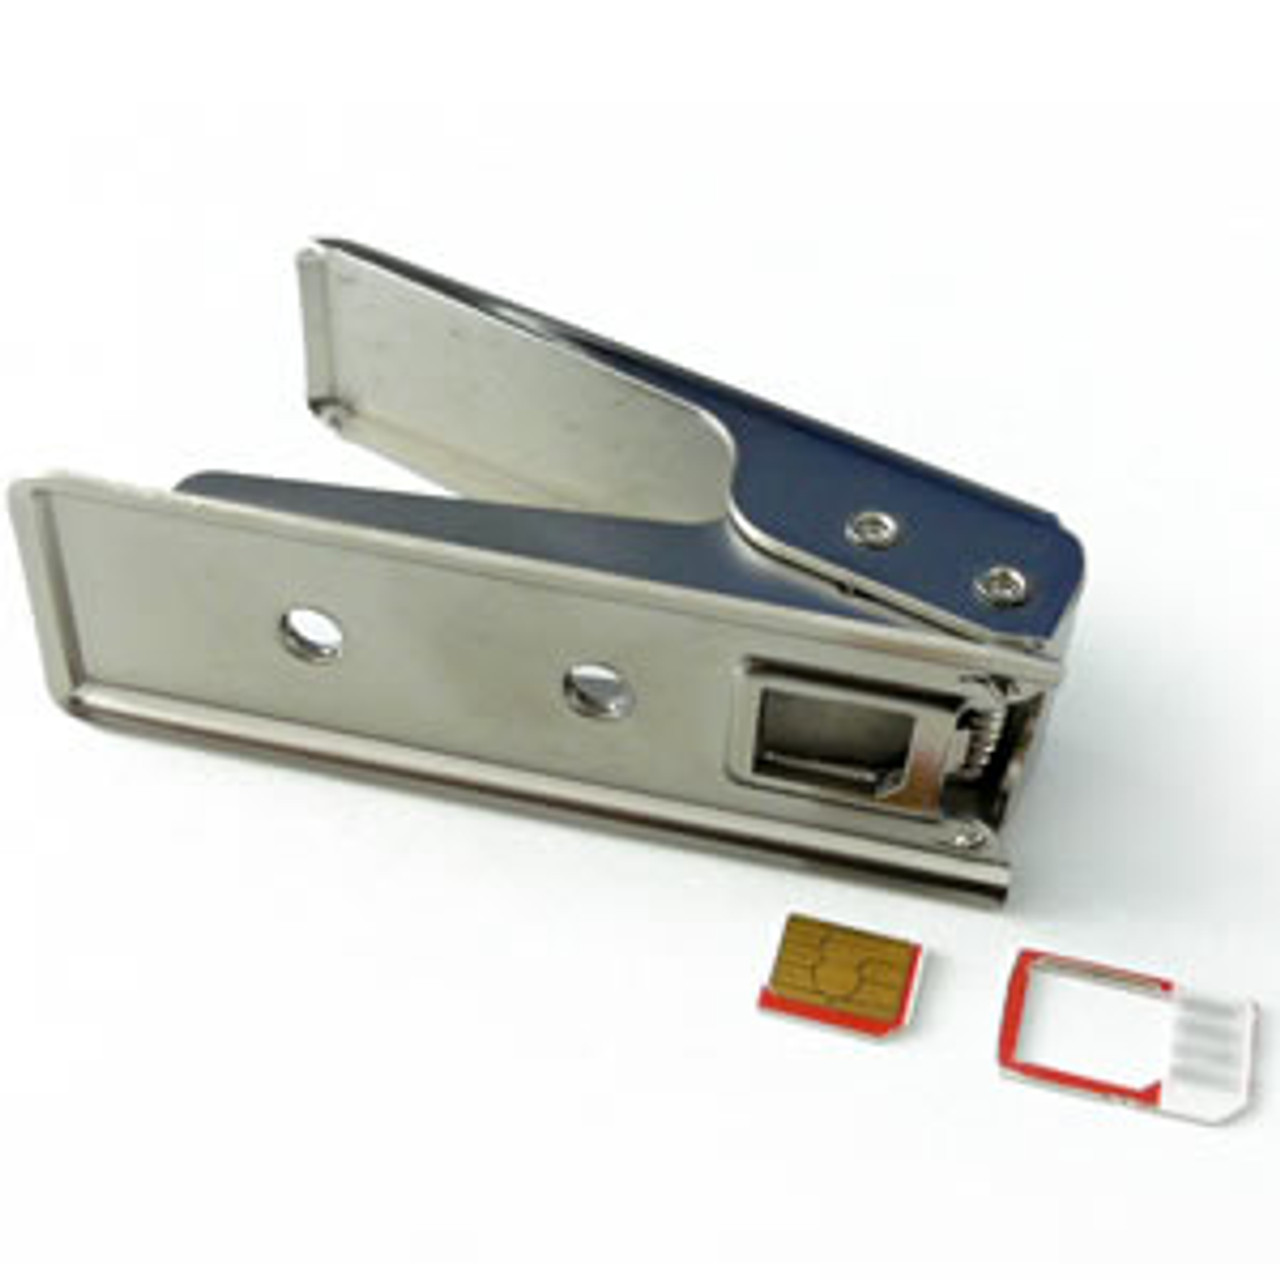 Product image for Micro Sim Card Cutter for iPad, iPhone 4G, 4S   CX Computer Superstore